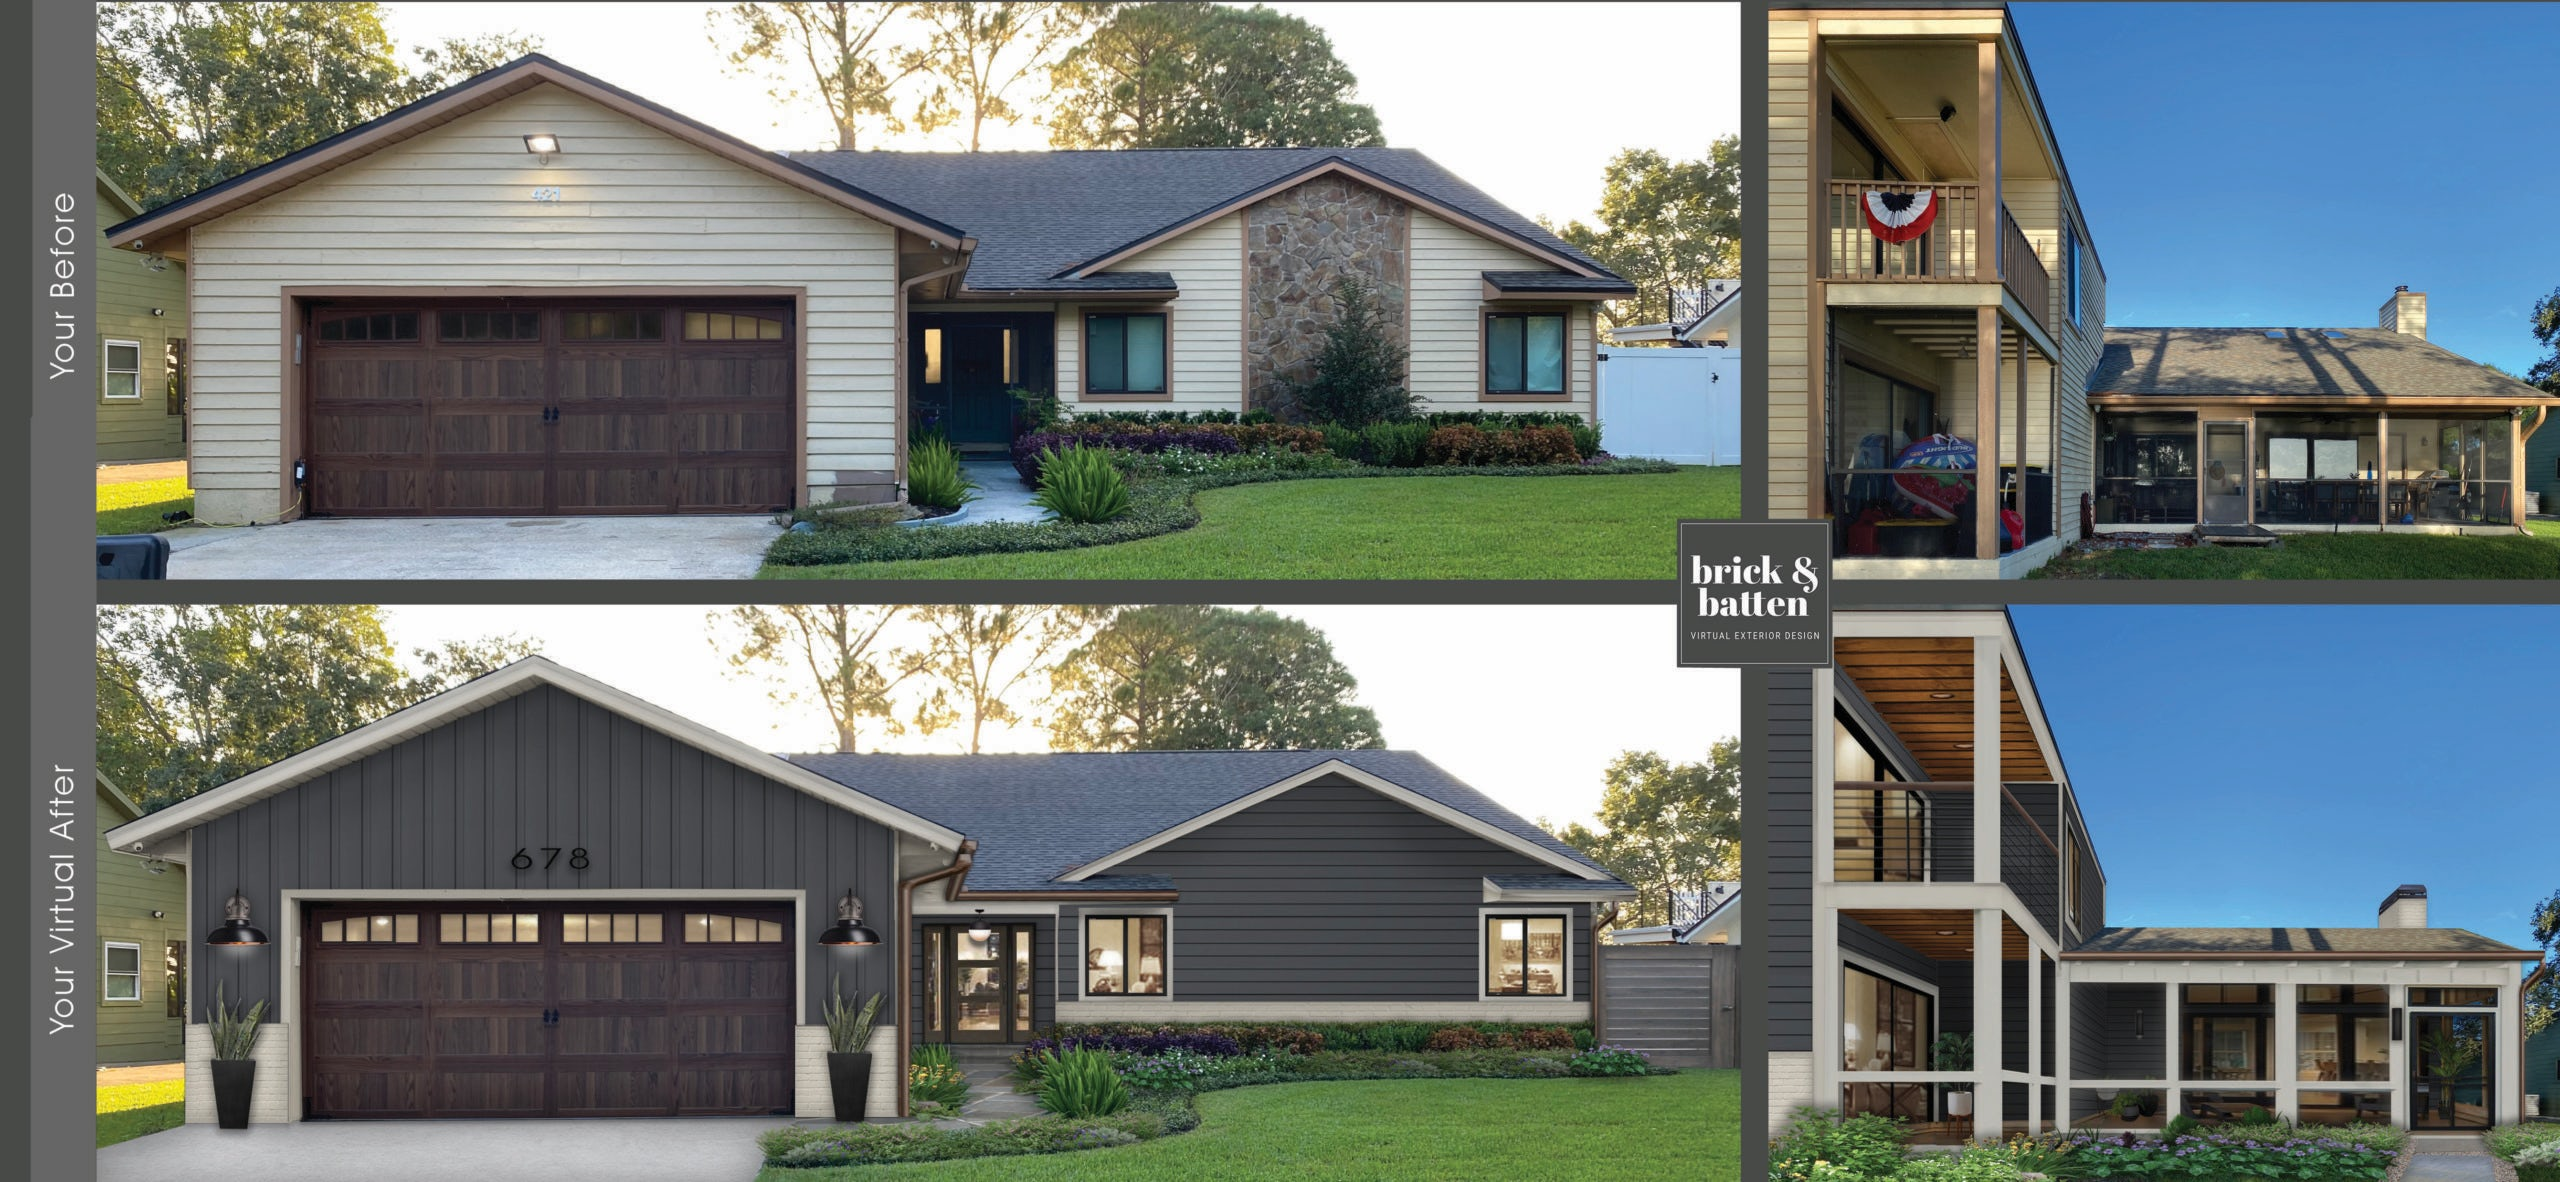 A before and after of a home with new paint and a screen porch